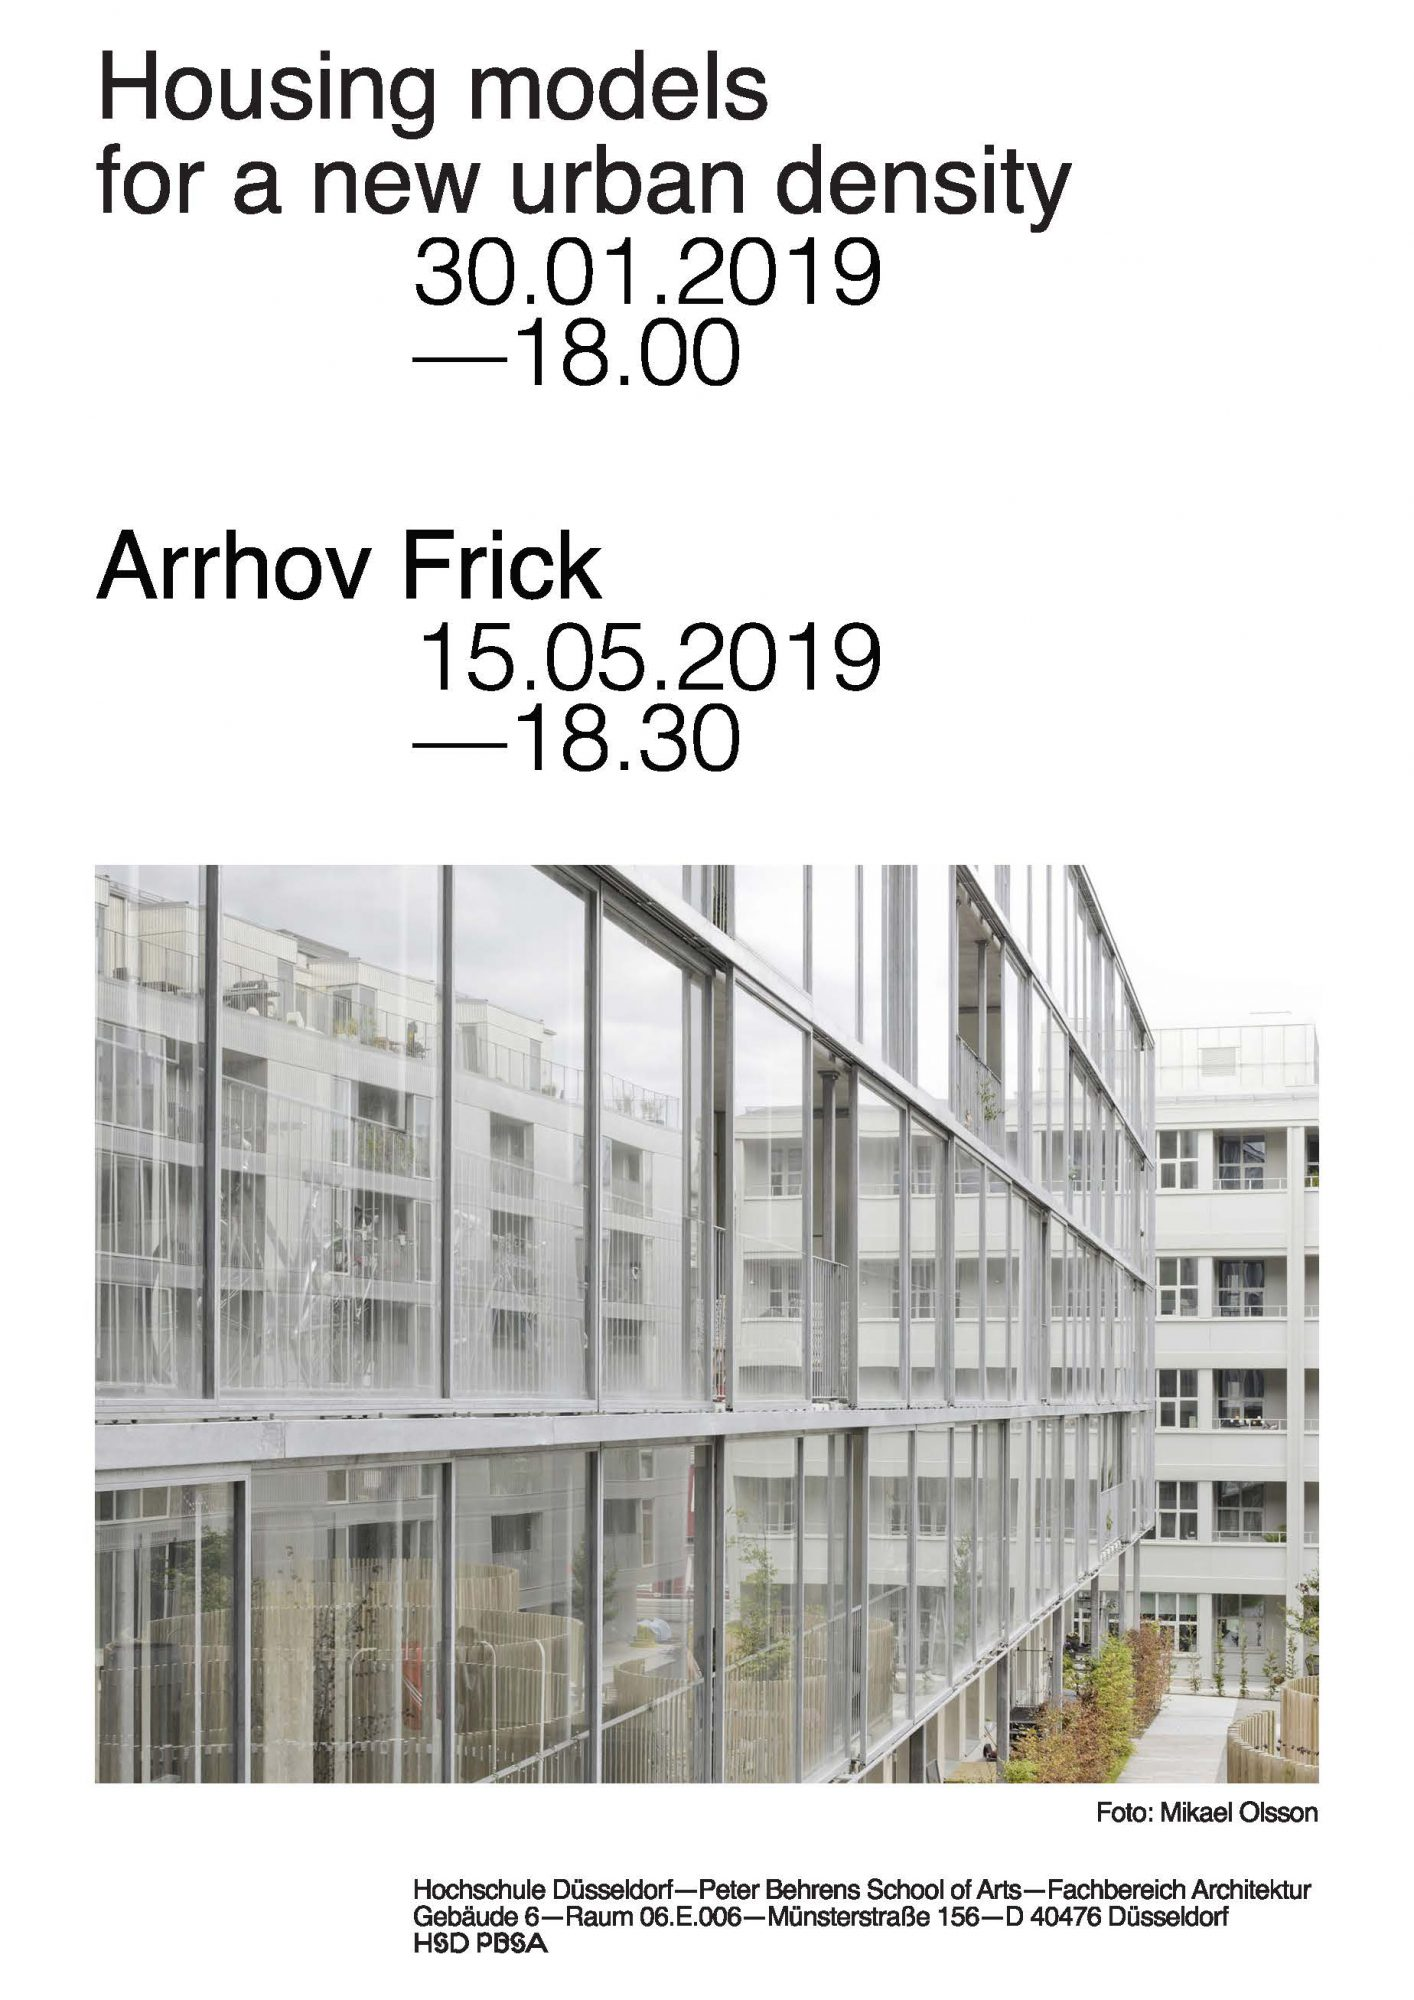 housing models for a new urban density_Arrhov Frick_A3